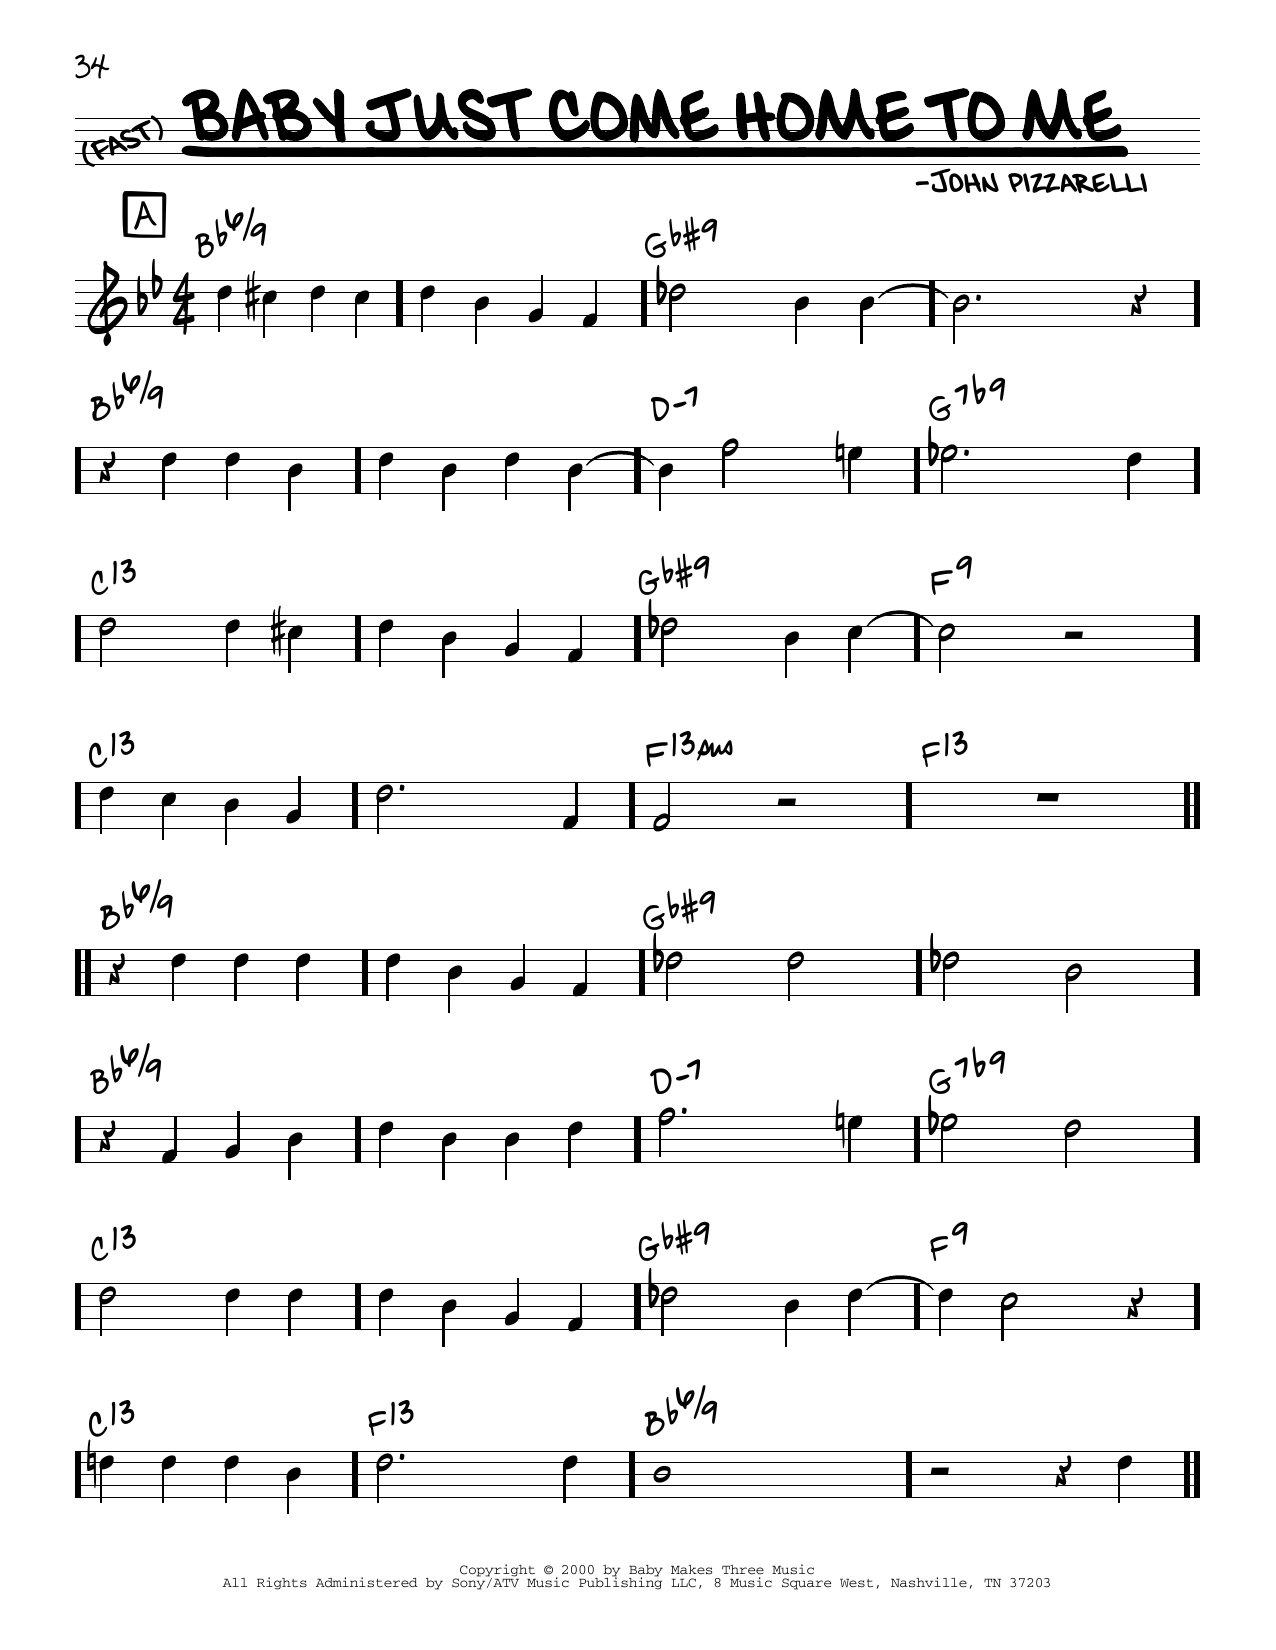 John Pizzarelli Baby Just Come Home To Me sheet music notes and chords. Download Printable PDF.